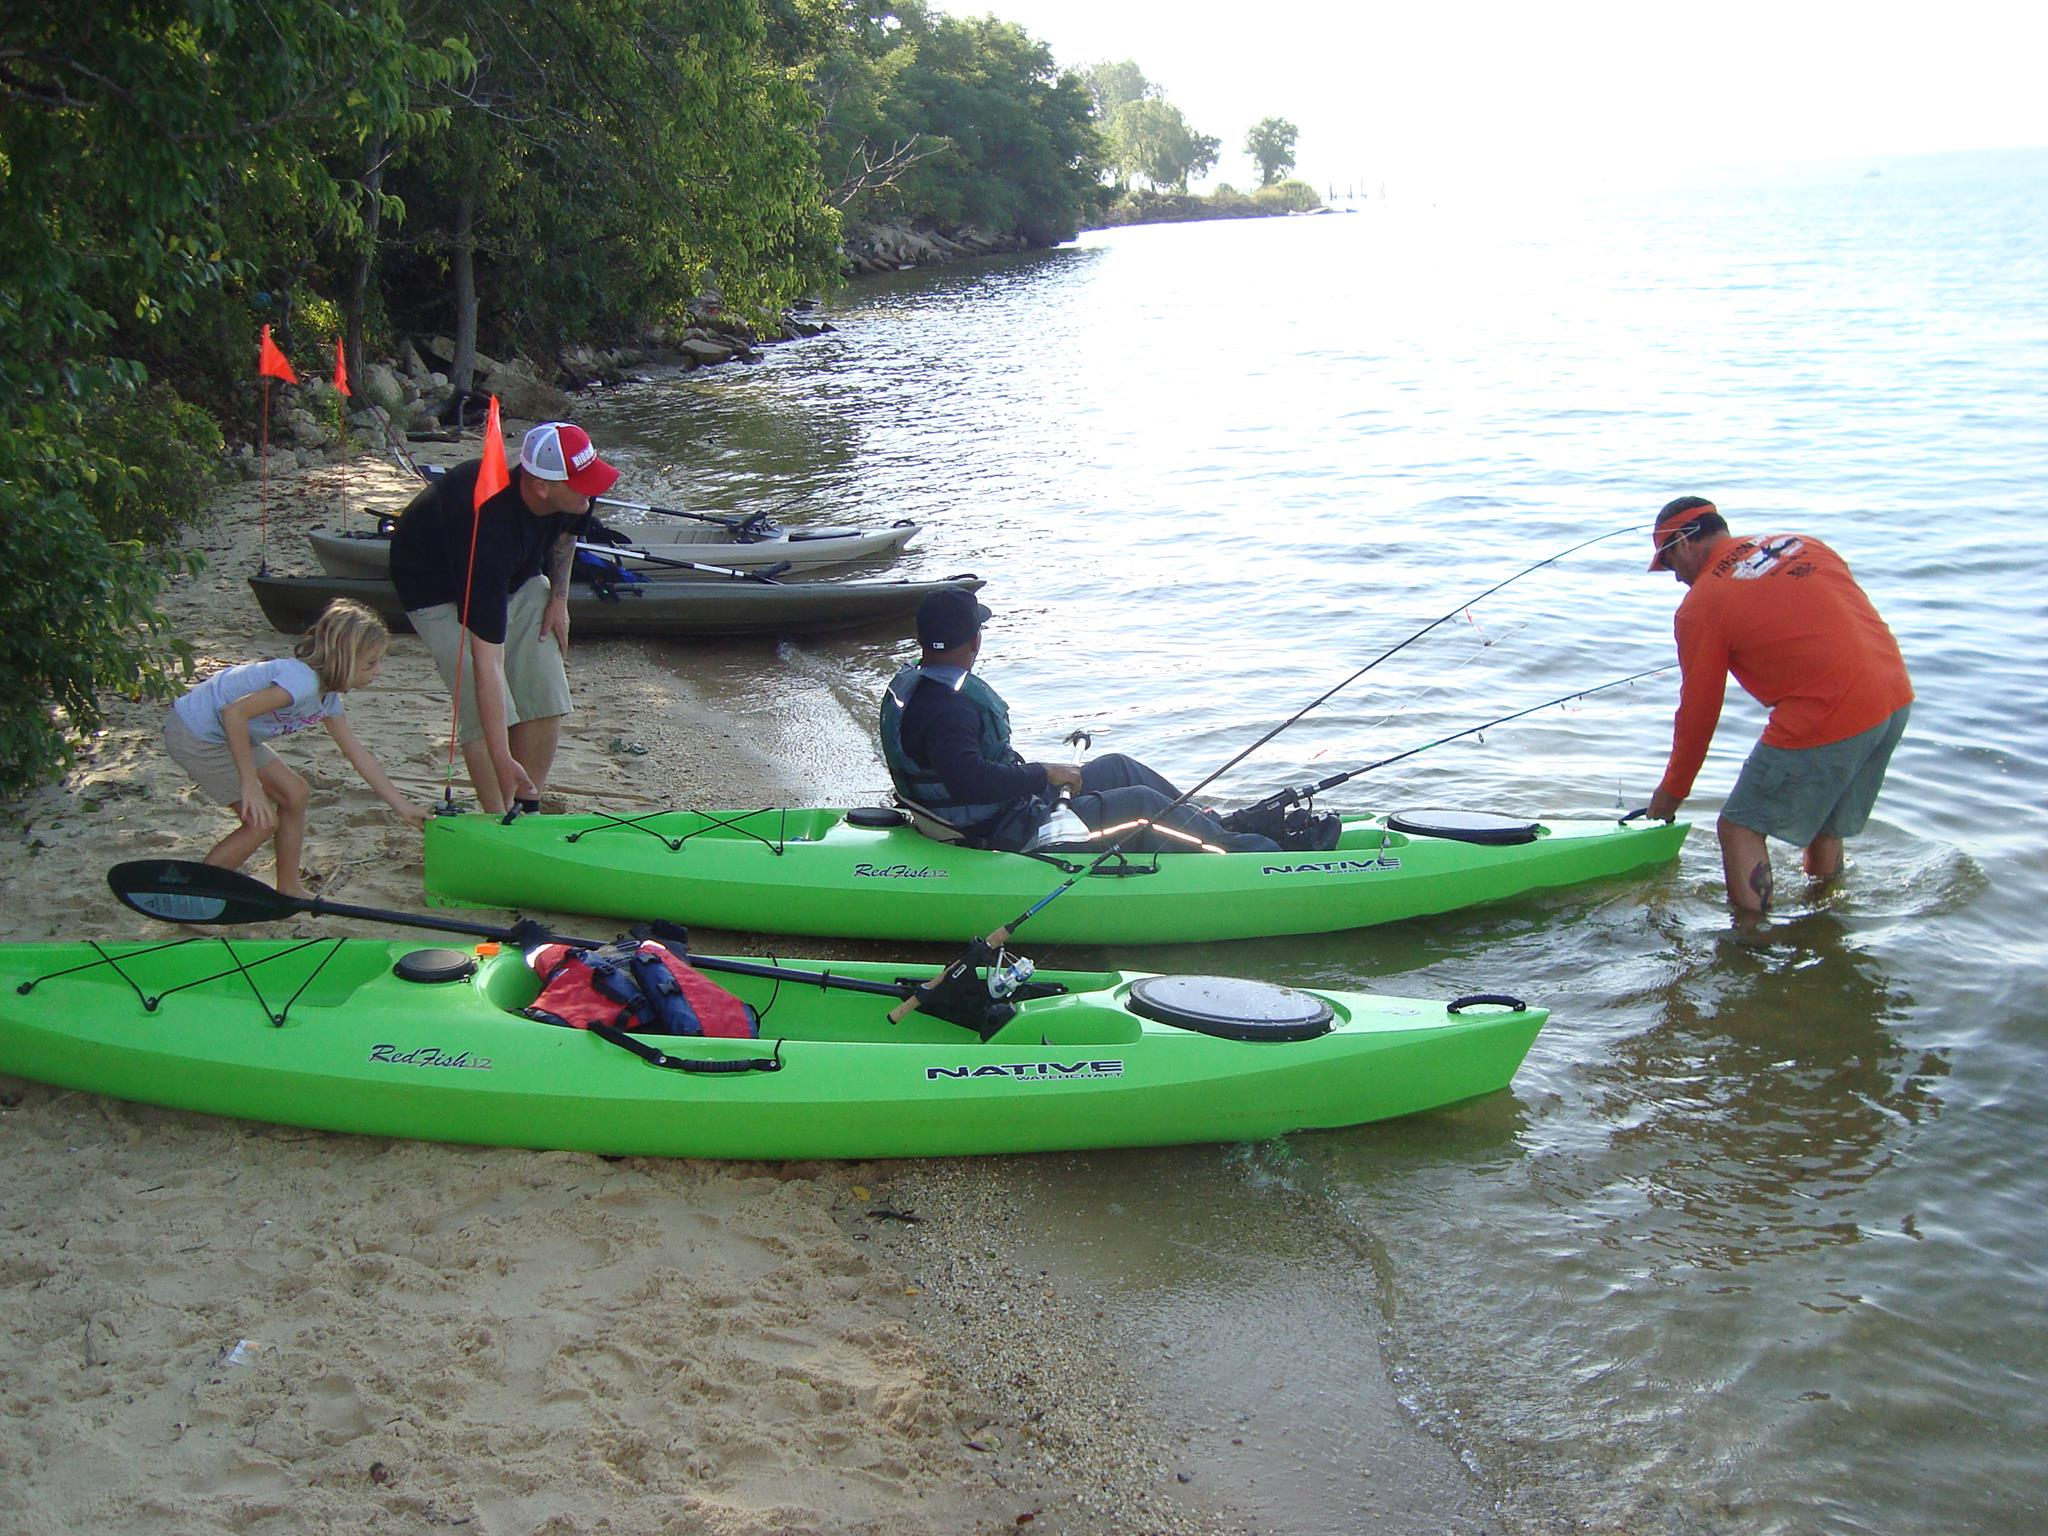 Blanchet helps launch a kayak into the water at Solomons Island, Maryland